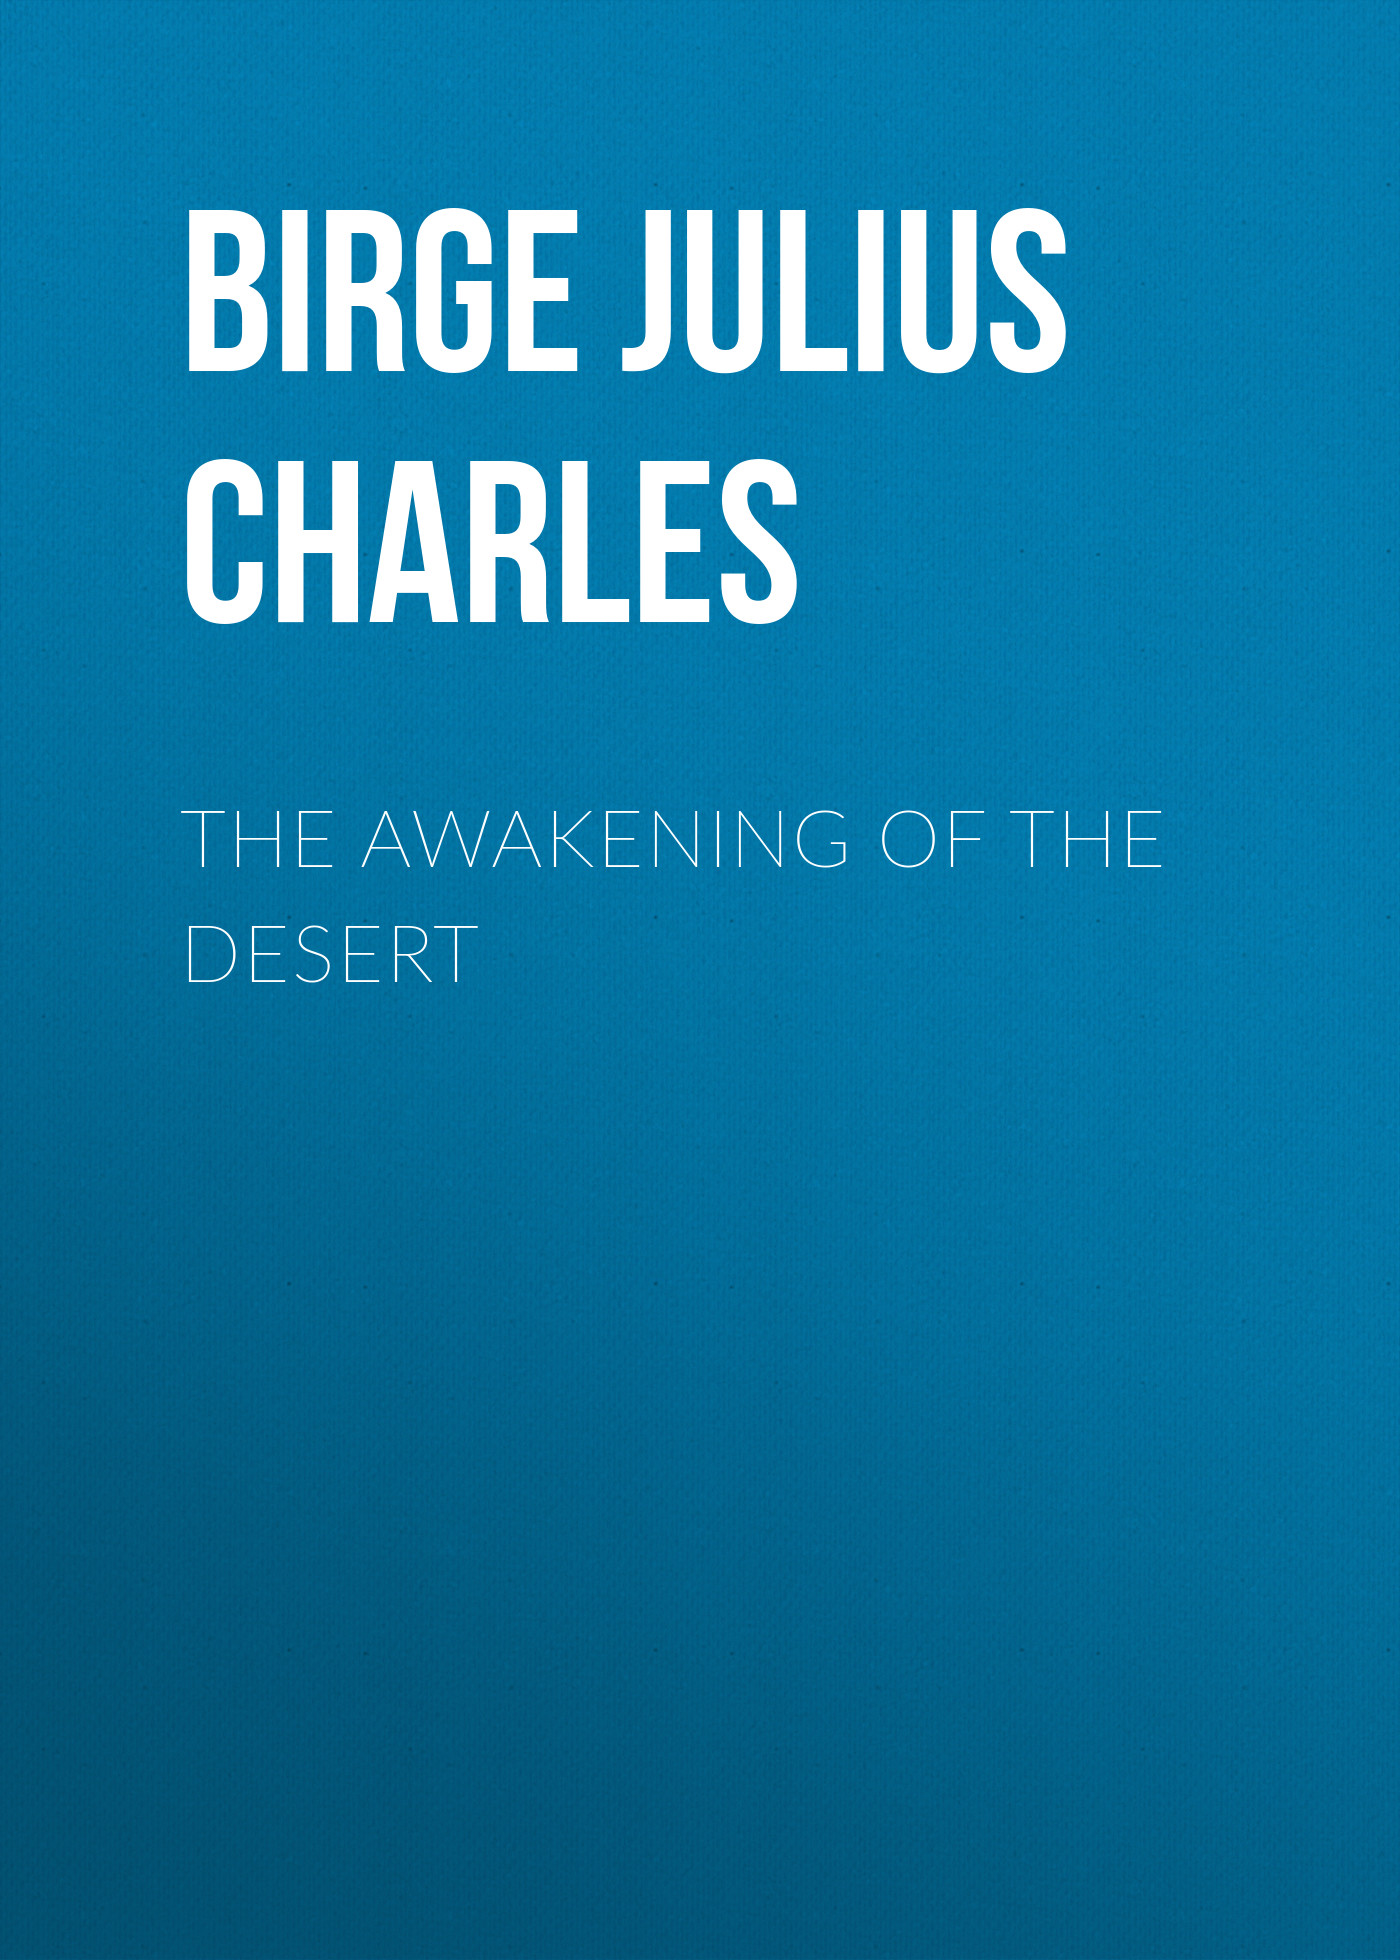 Birge Julius Charles The Awakening of the Desert kathleen creighton the awakening of dr brown